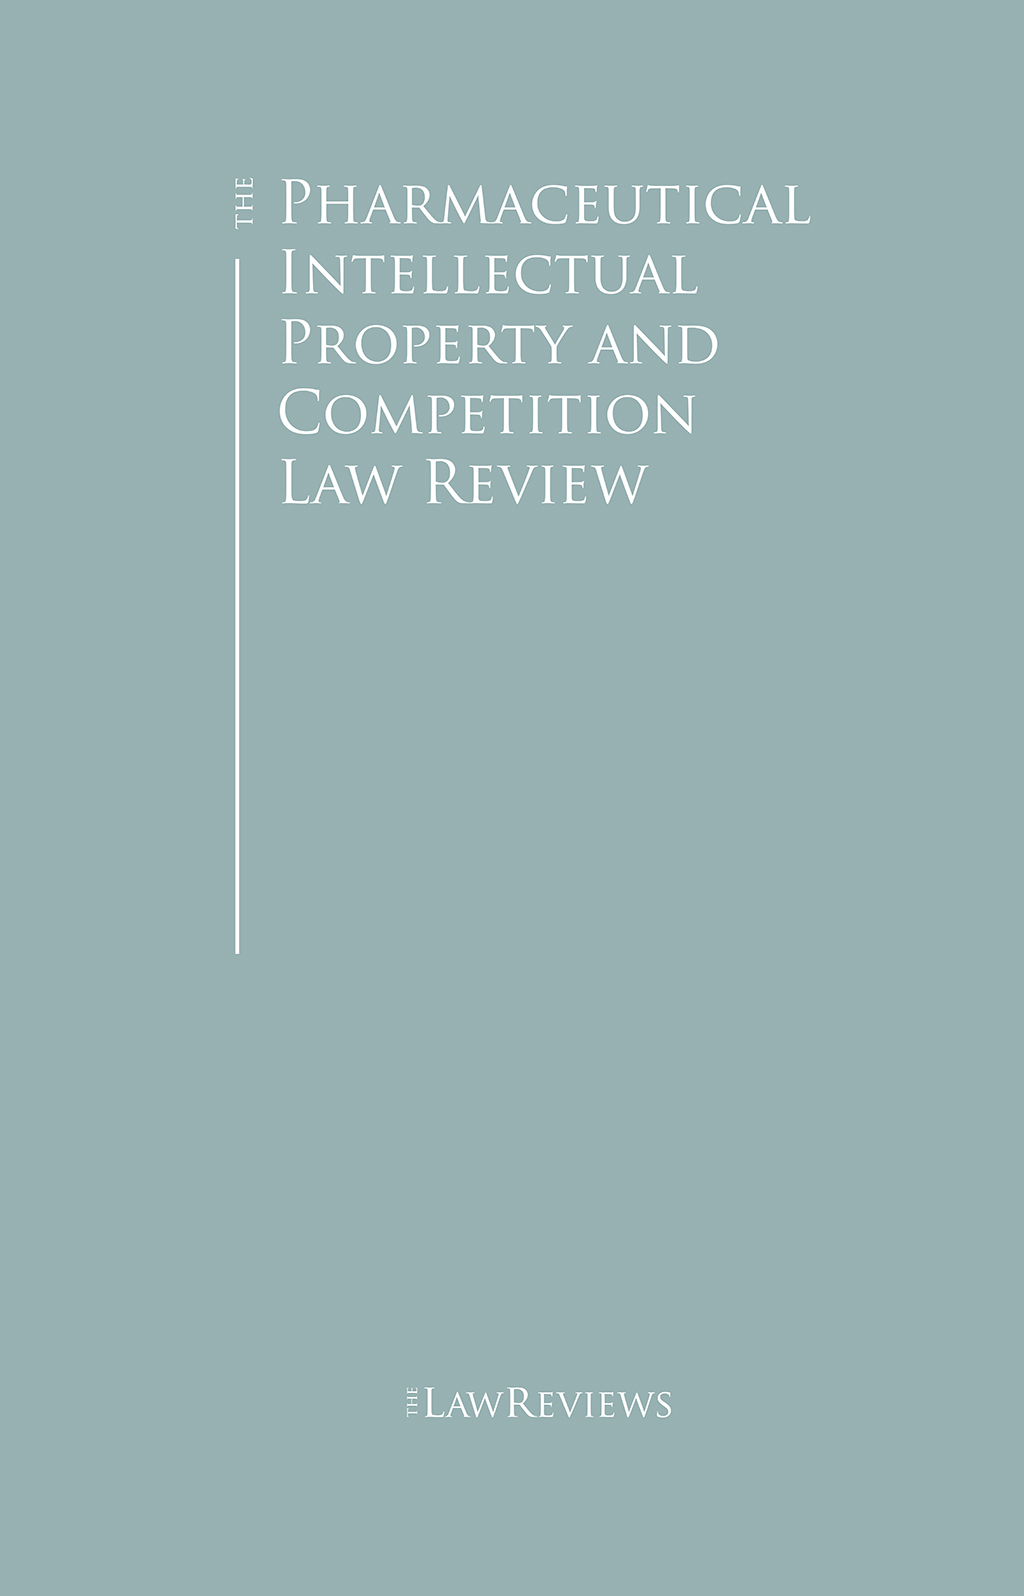 The Pharmaceutical Intellectual Property and Competition Law Review